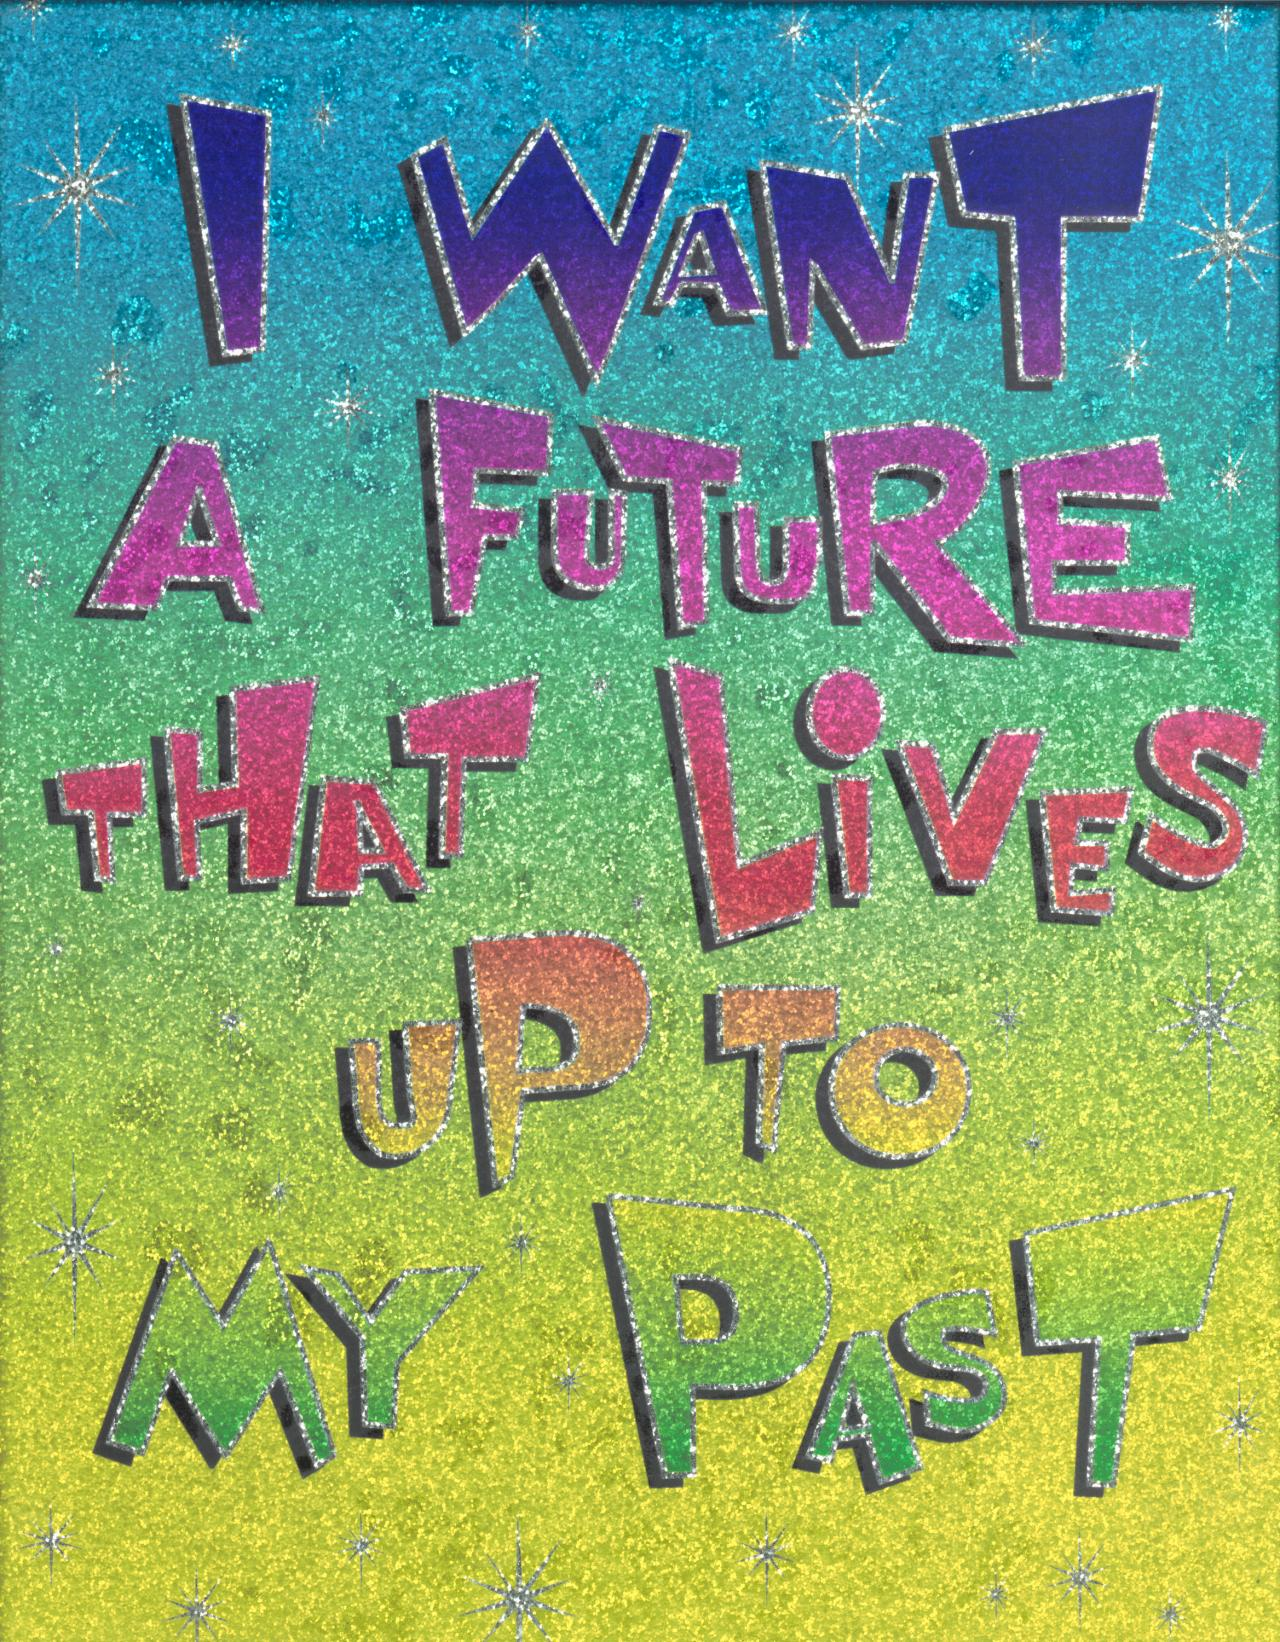 I want a future that lives up to my past